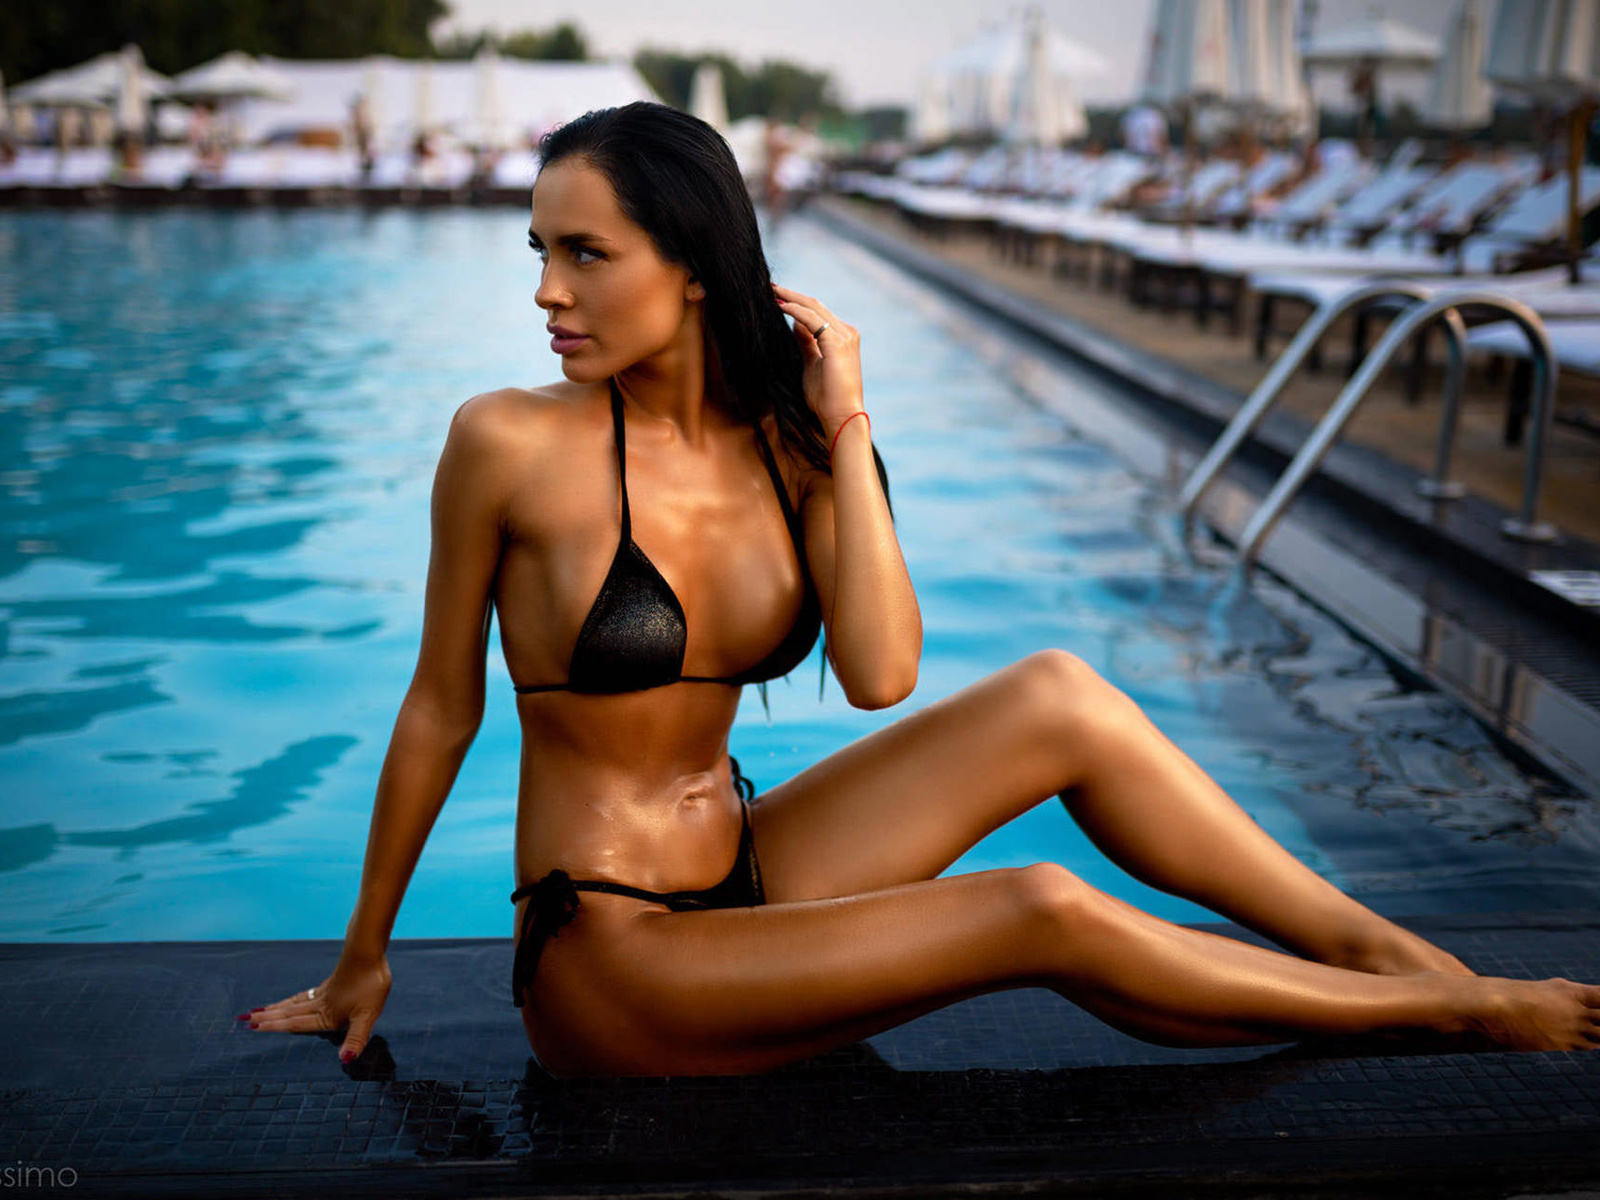 women, tanned, swimming pool, women outdoors, black bikini, belly, sitting, red nails, looking away, pink lipstick